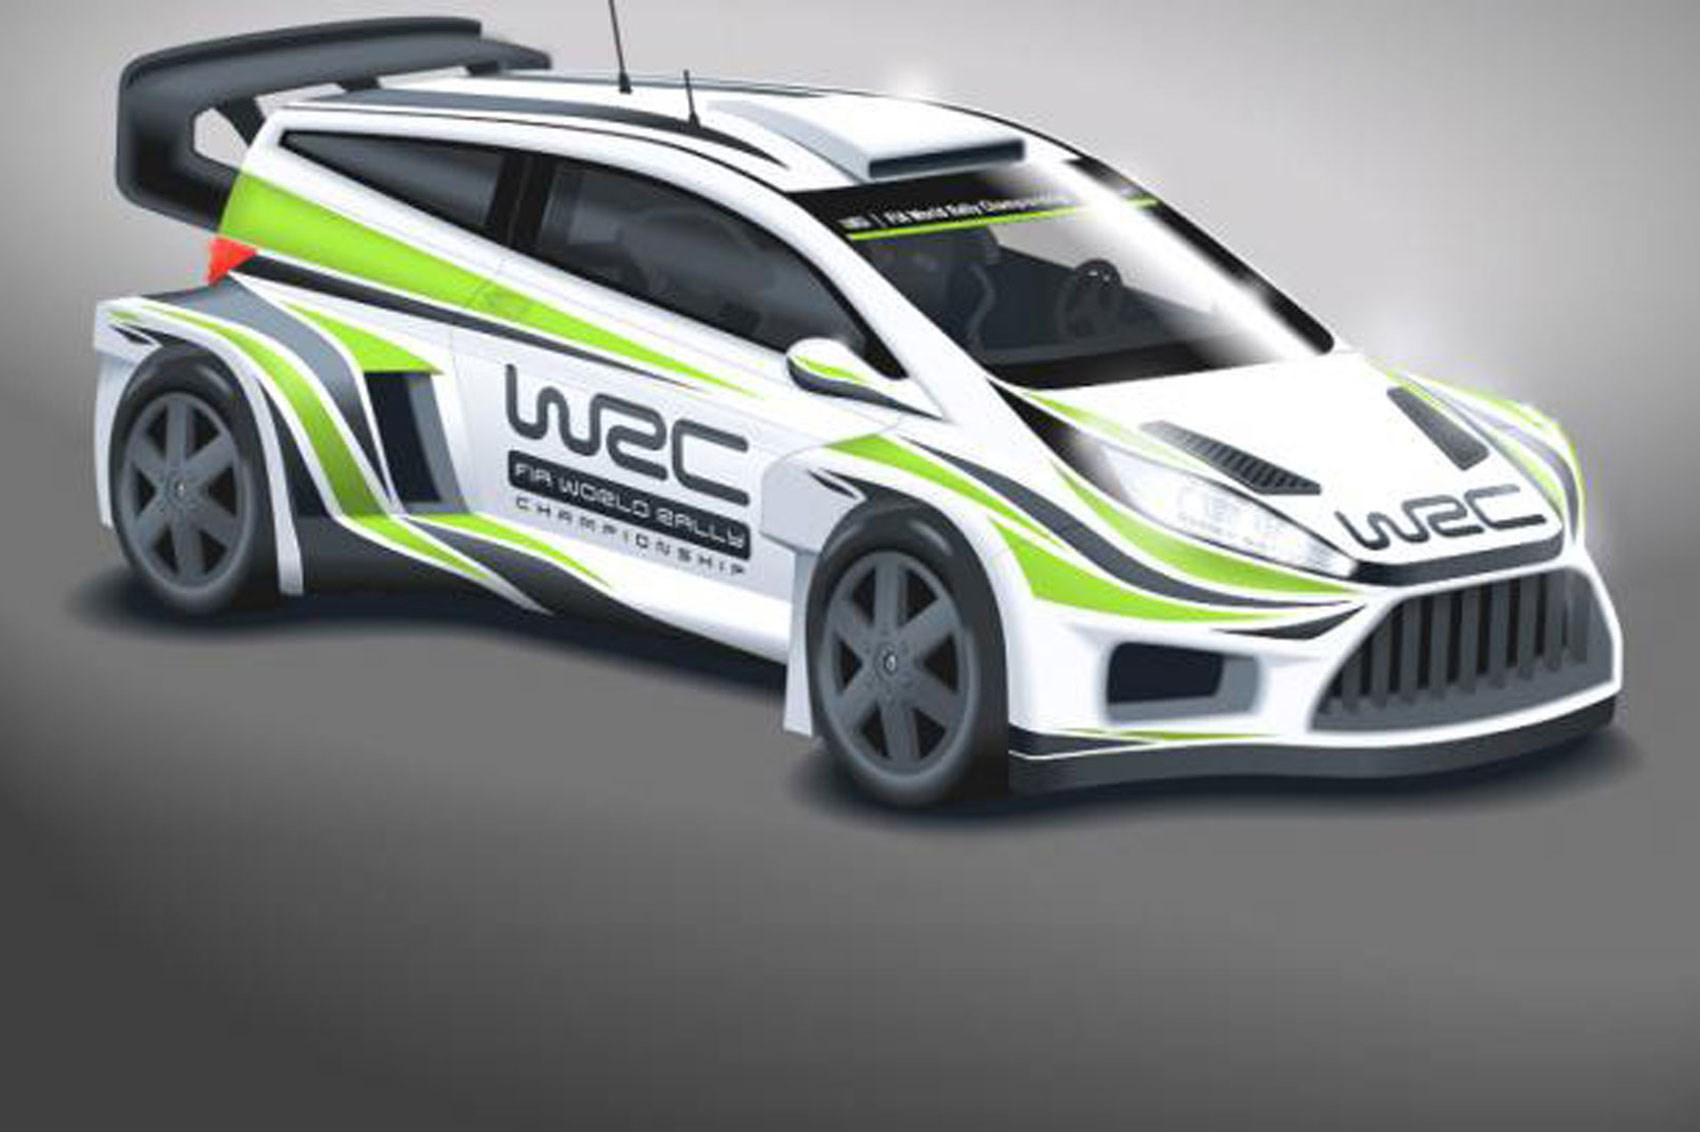 Ultrablogus  Pretty Wild New Look For Wrc Cars In  By Car Magazine With Outstanding Wrc Cars Will Get Wider Bodies Bigger Wings And More Power For  With Astounding Mk Golf R Interior Also Al Interior In Addition Mastretta Mxt Interior And Toyota Ft  Interior As Well As Vw Golf Gti Mk Interior Additionally Mercedes B Interior From Carmagazinecouk With Ultrablogus  Outstanding Wild New Look For Wrc Cars In  By Car Magazine With Astounding Wrc Cars Will Get Wider Bodies Bigger Wings And More Power For  And Pretty Mk Golf R Interior Also Al Interior In Addition Mastretta Mxt Interior From Carmagazinecouk